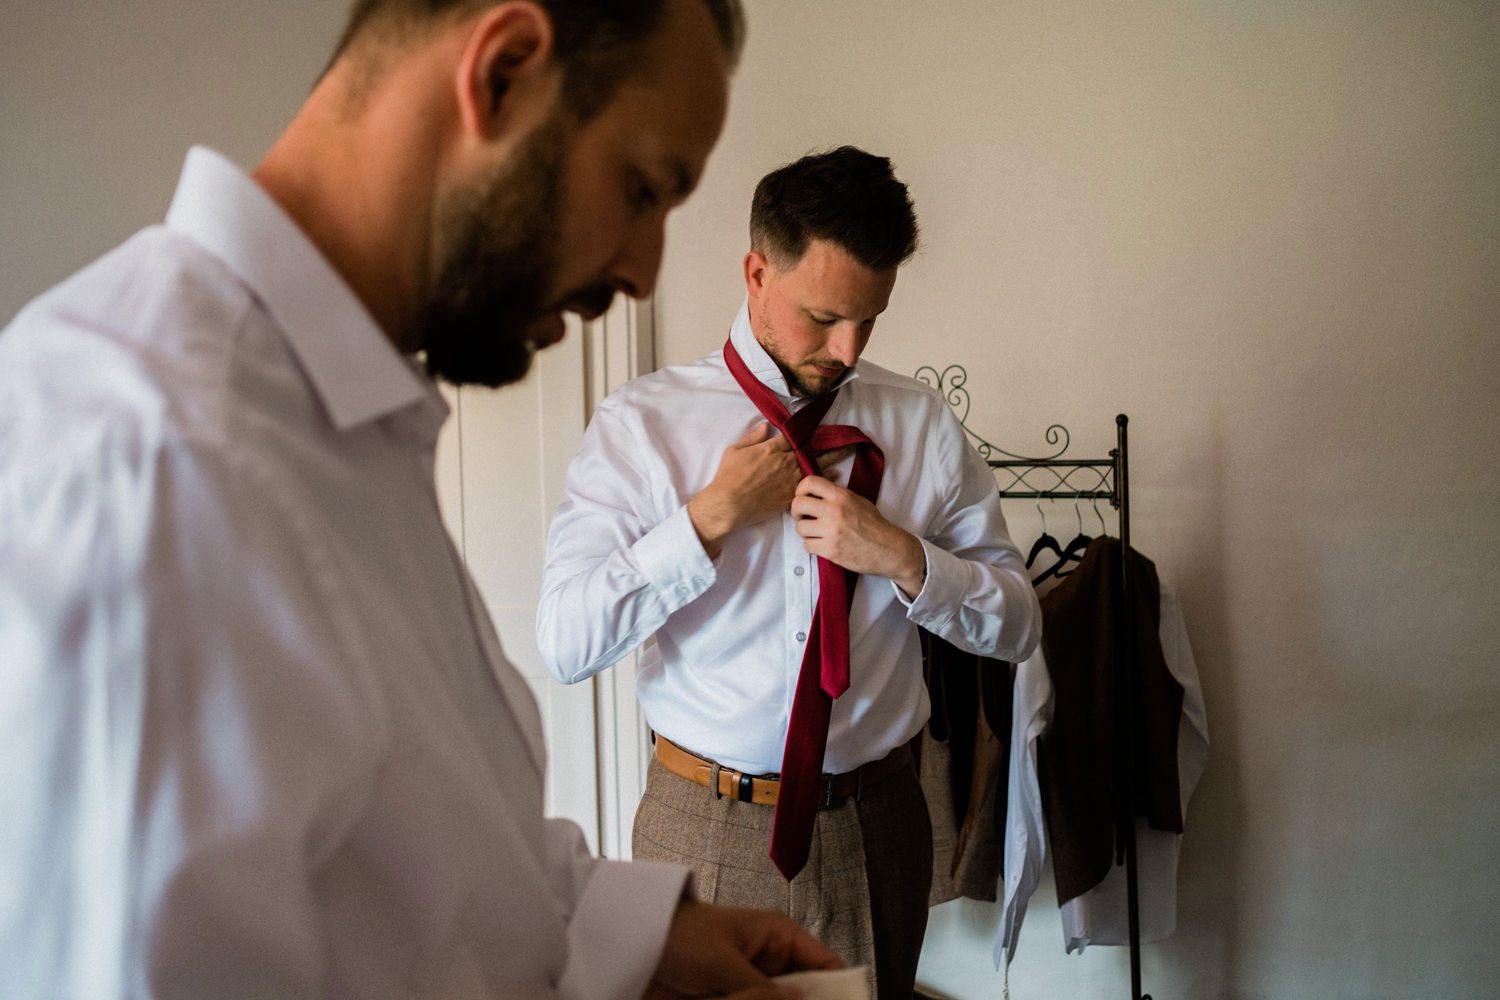 107-The-Groom-Getting-Ready-How-To-Do-Tie.jpg